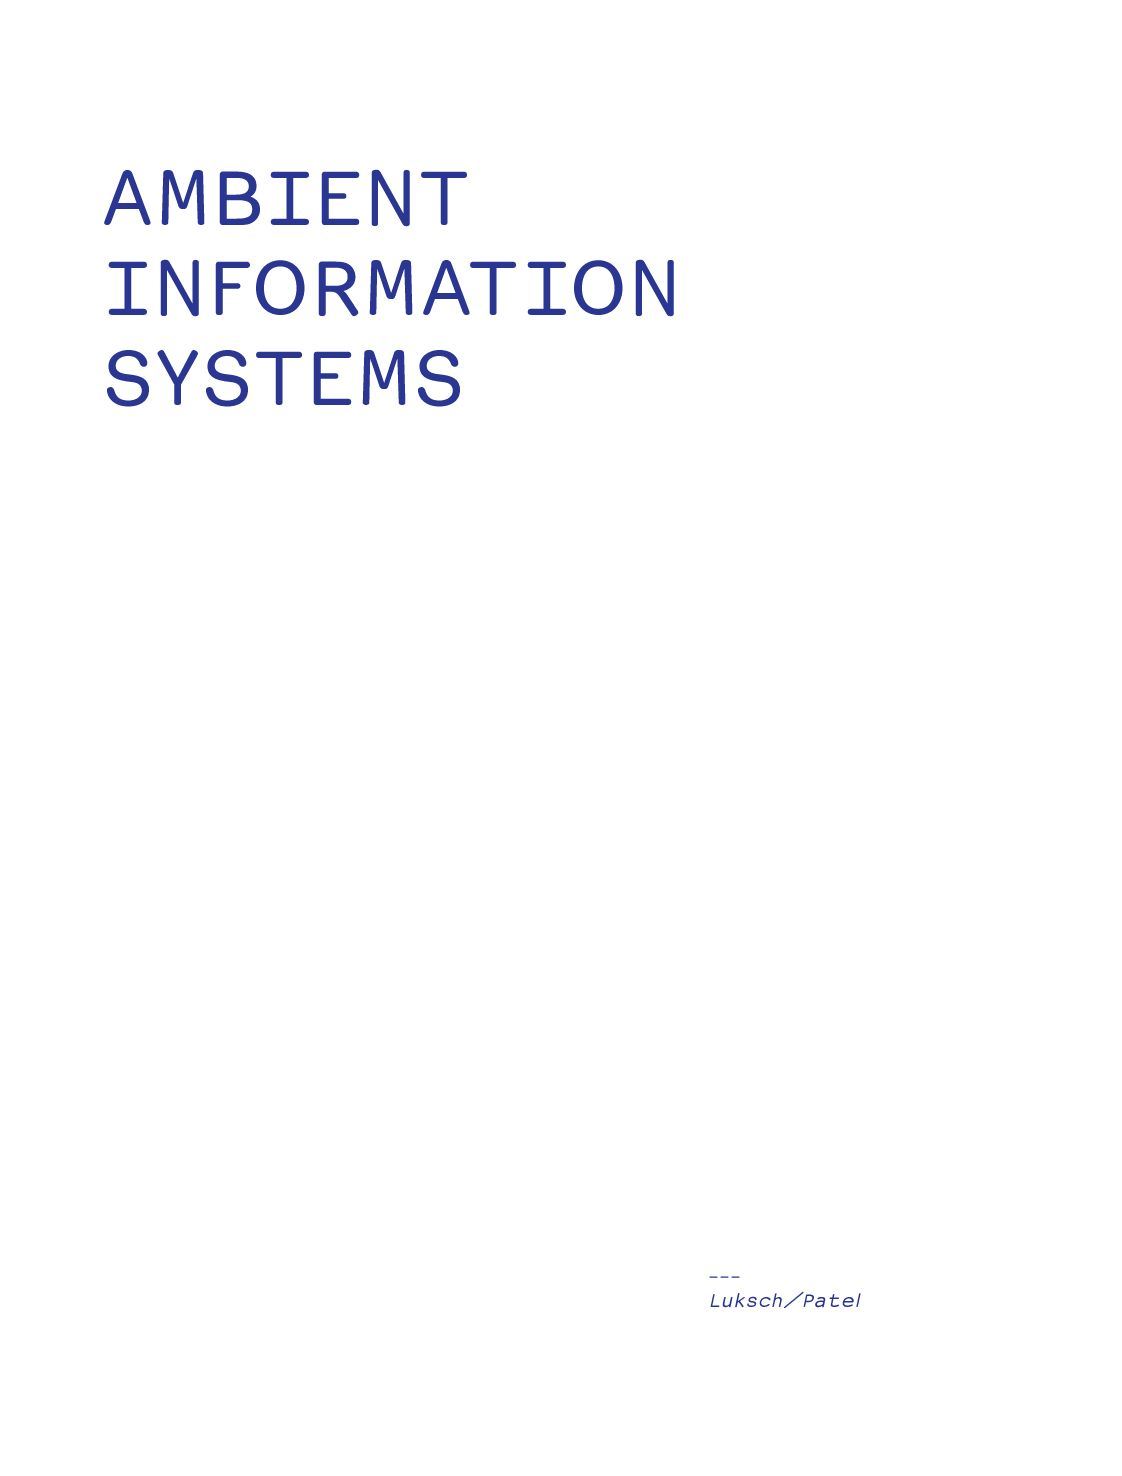 Ambient Information Systems 2009 By Mukul Patel Issuu Low Air Pressure Indicator And 2 Speed Axle Schematic Diagrams Of 1964 Ford B F T Series Trucks